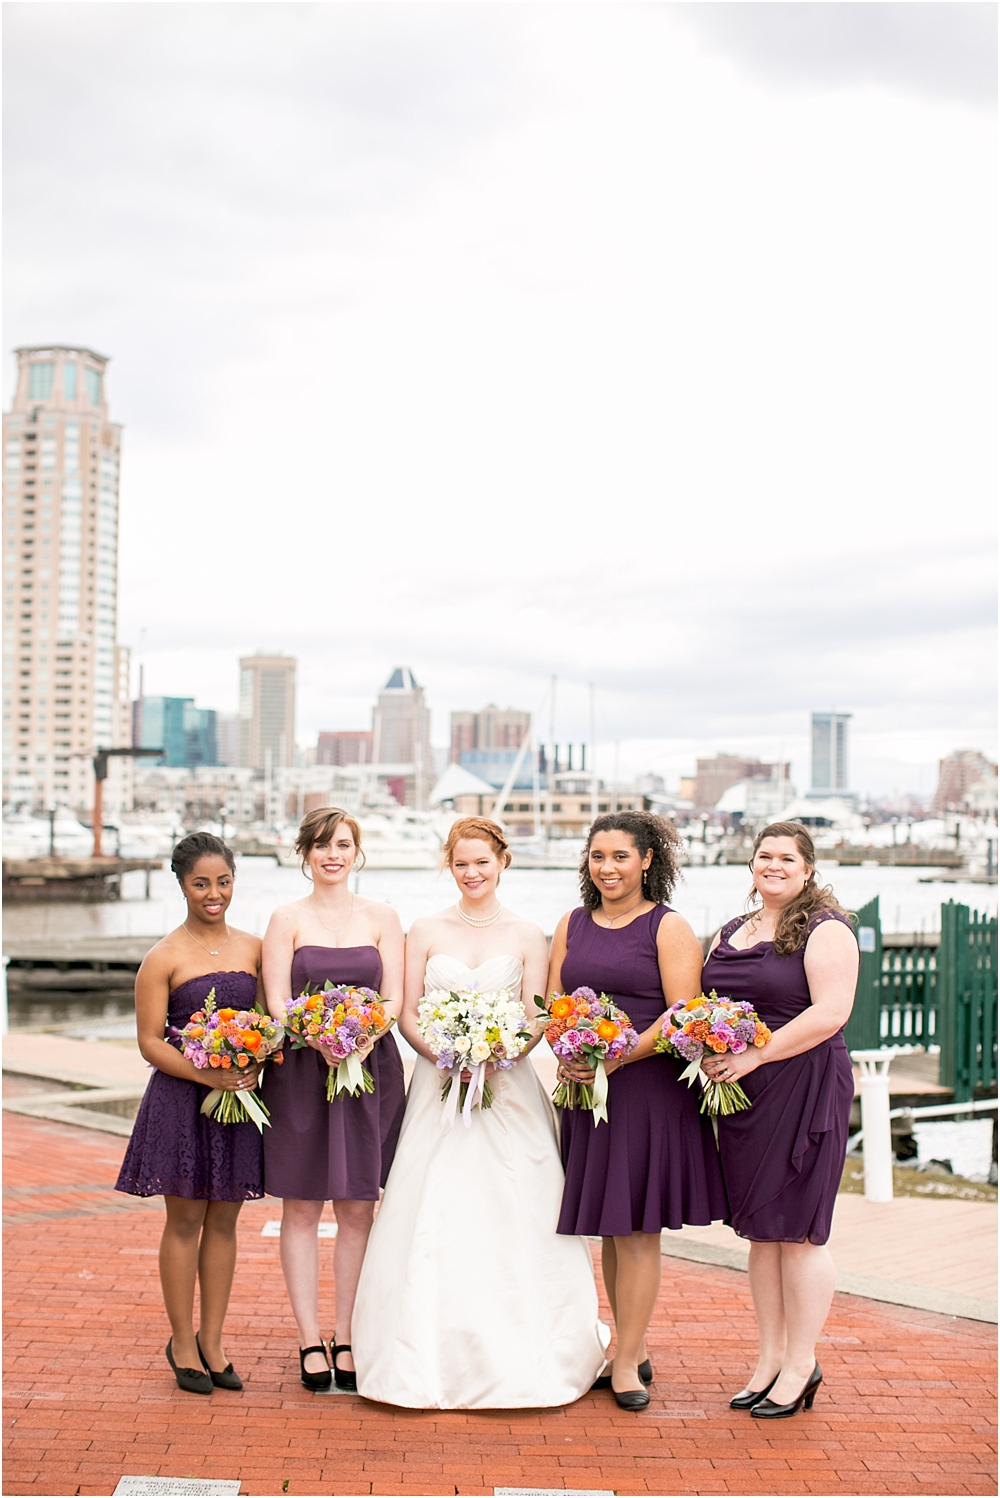 miriam michael baltimore museum of industry wedding living radiant photography_0031.jpg